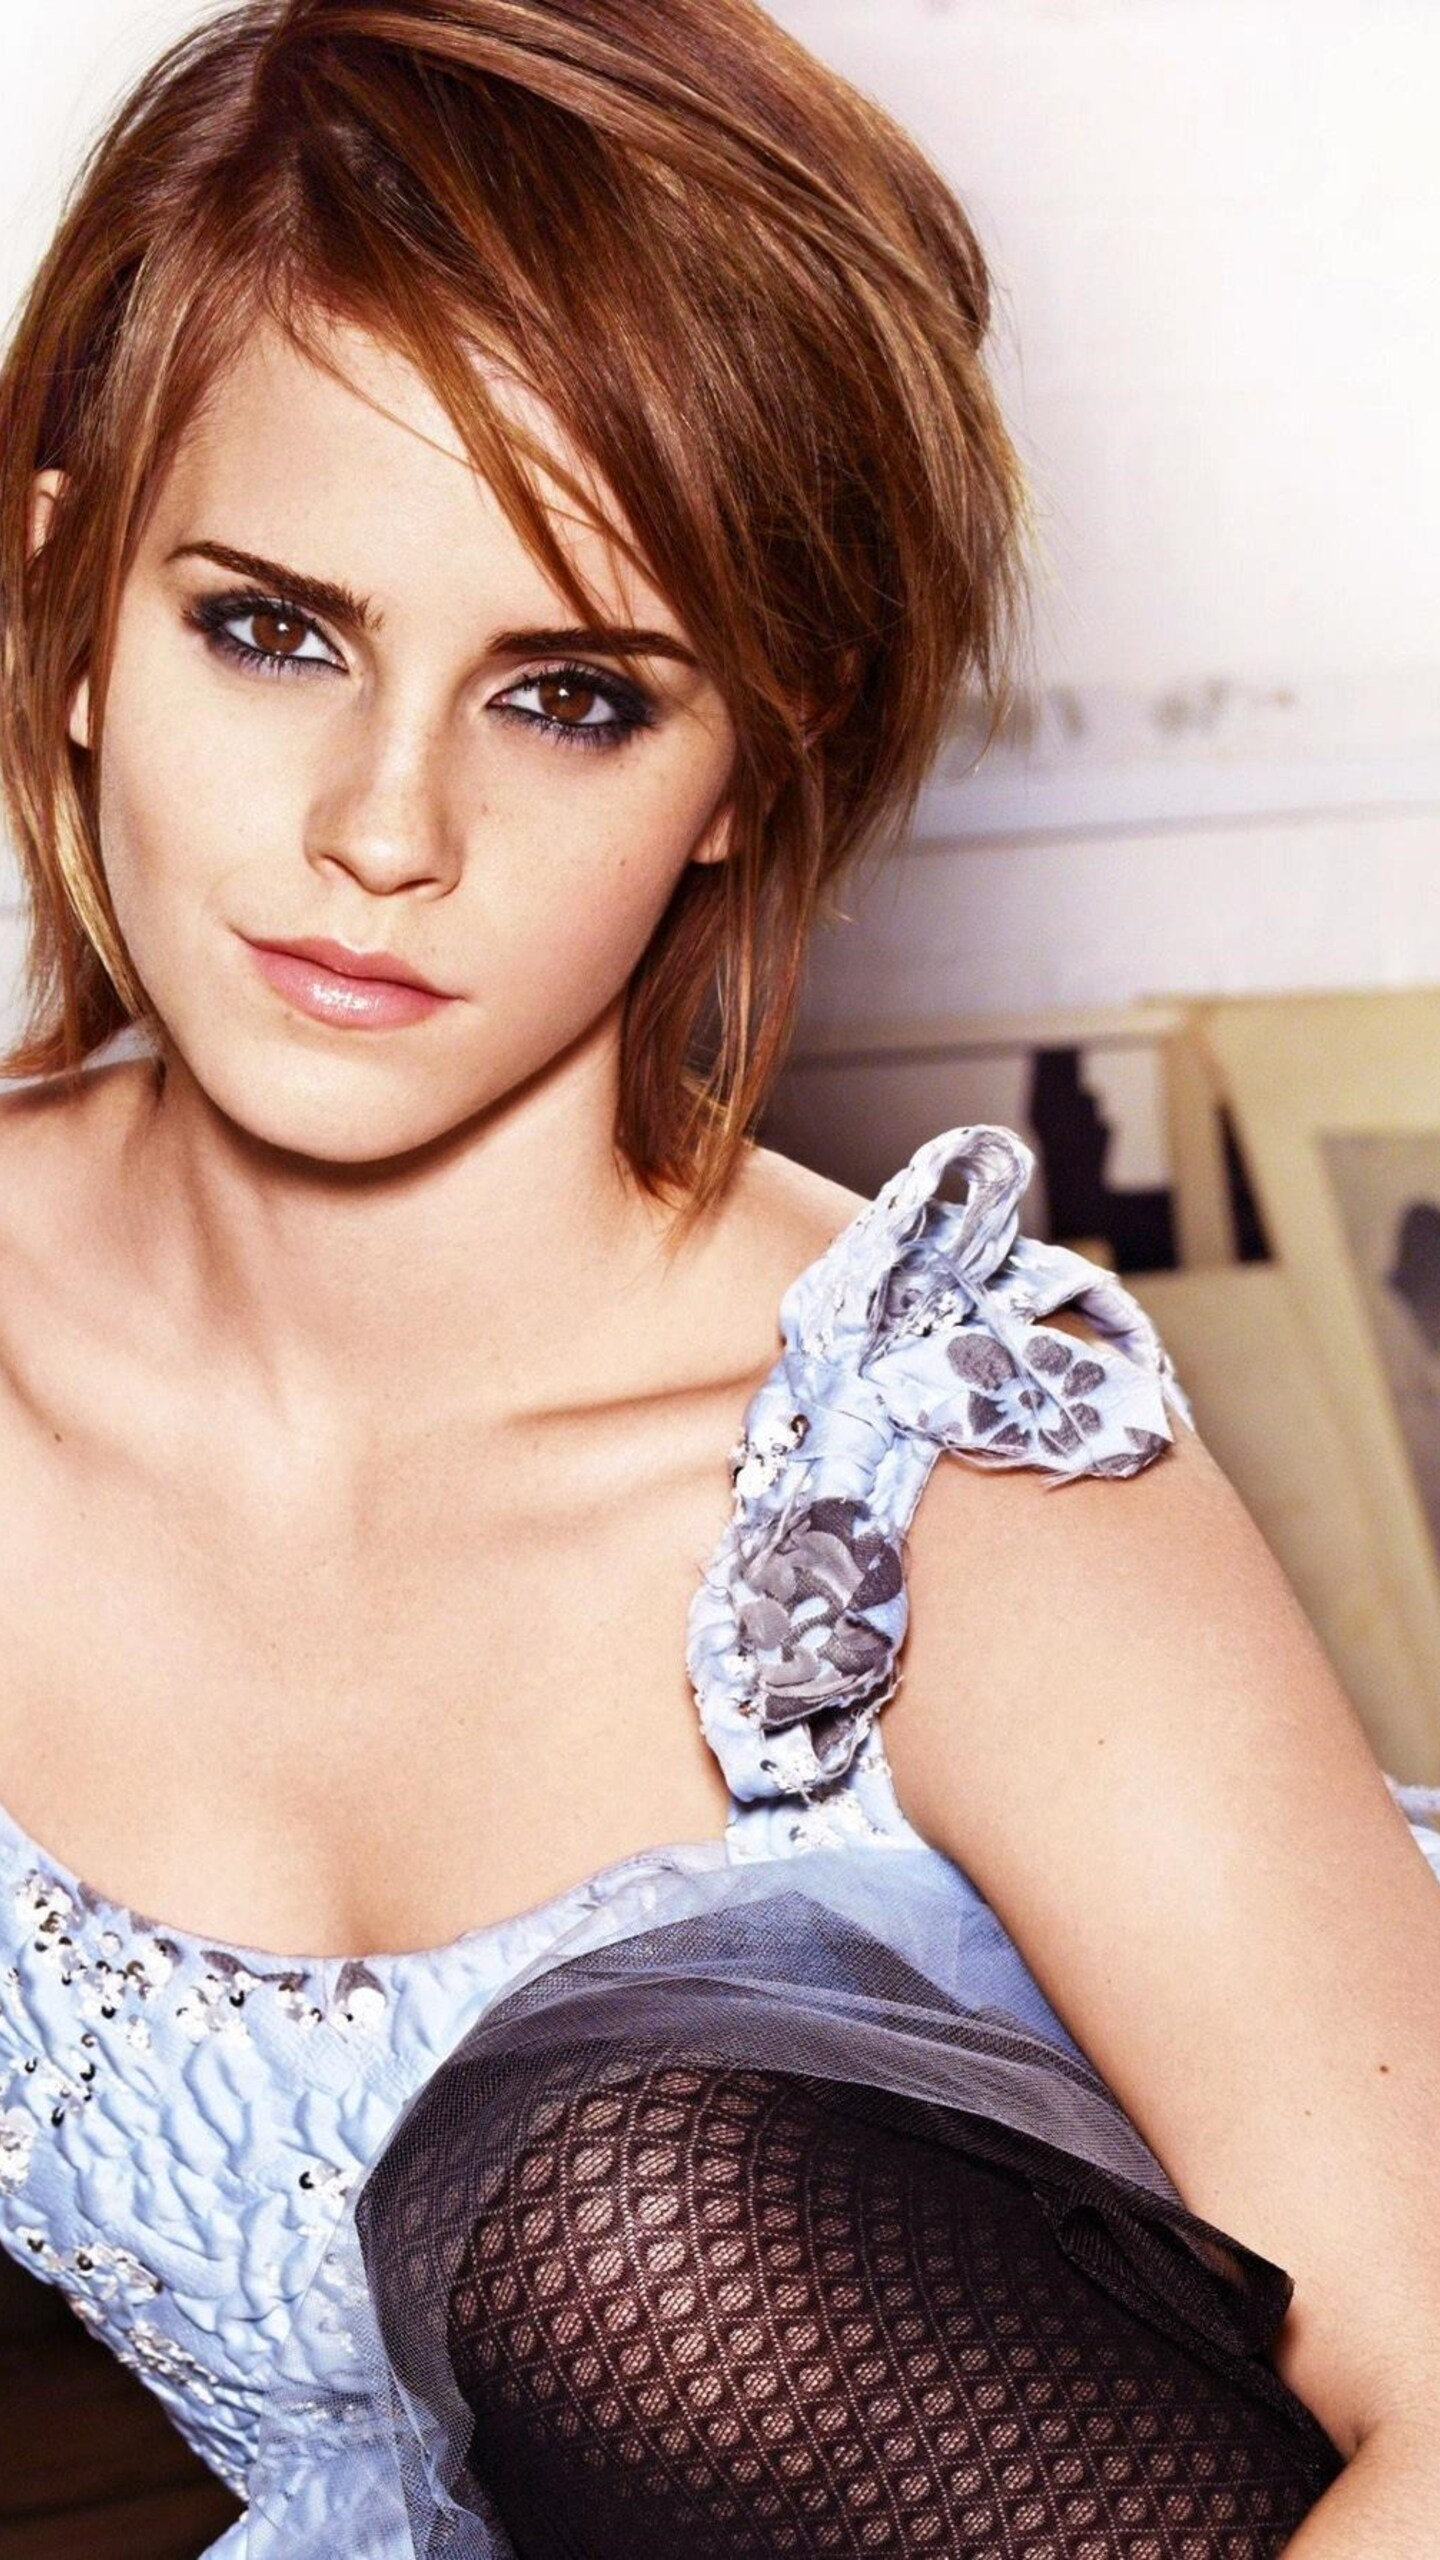 emma watson hot Pictures, Images & Photos | Photobucket